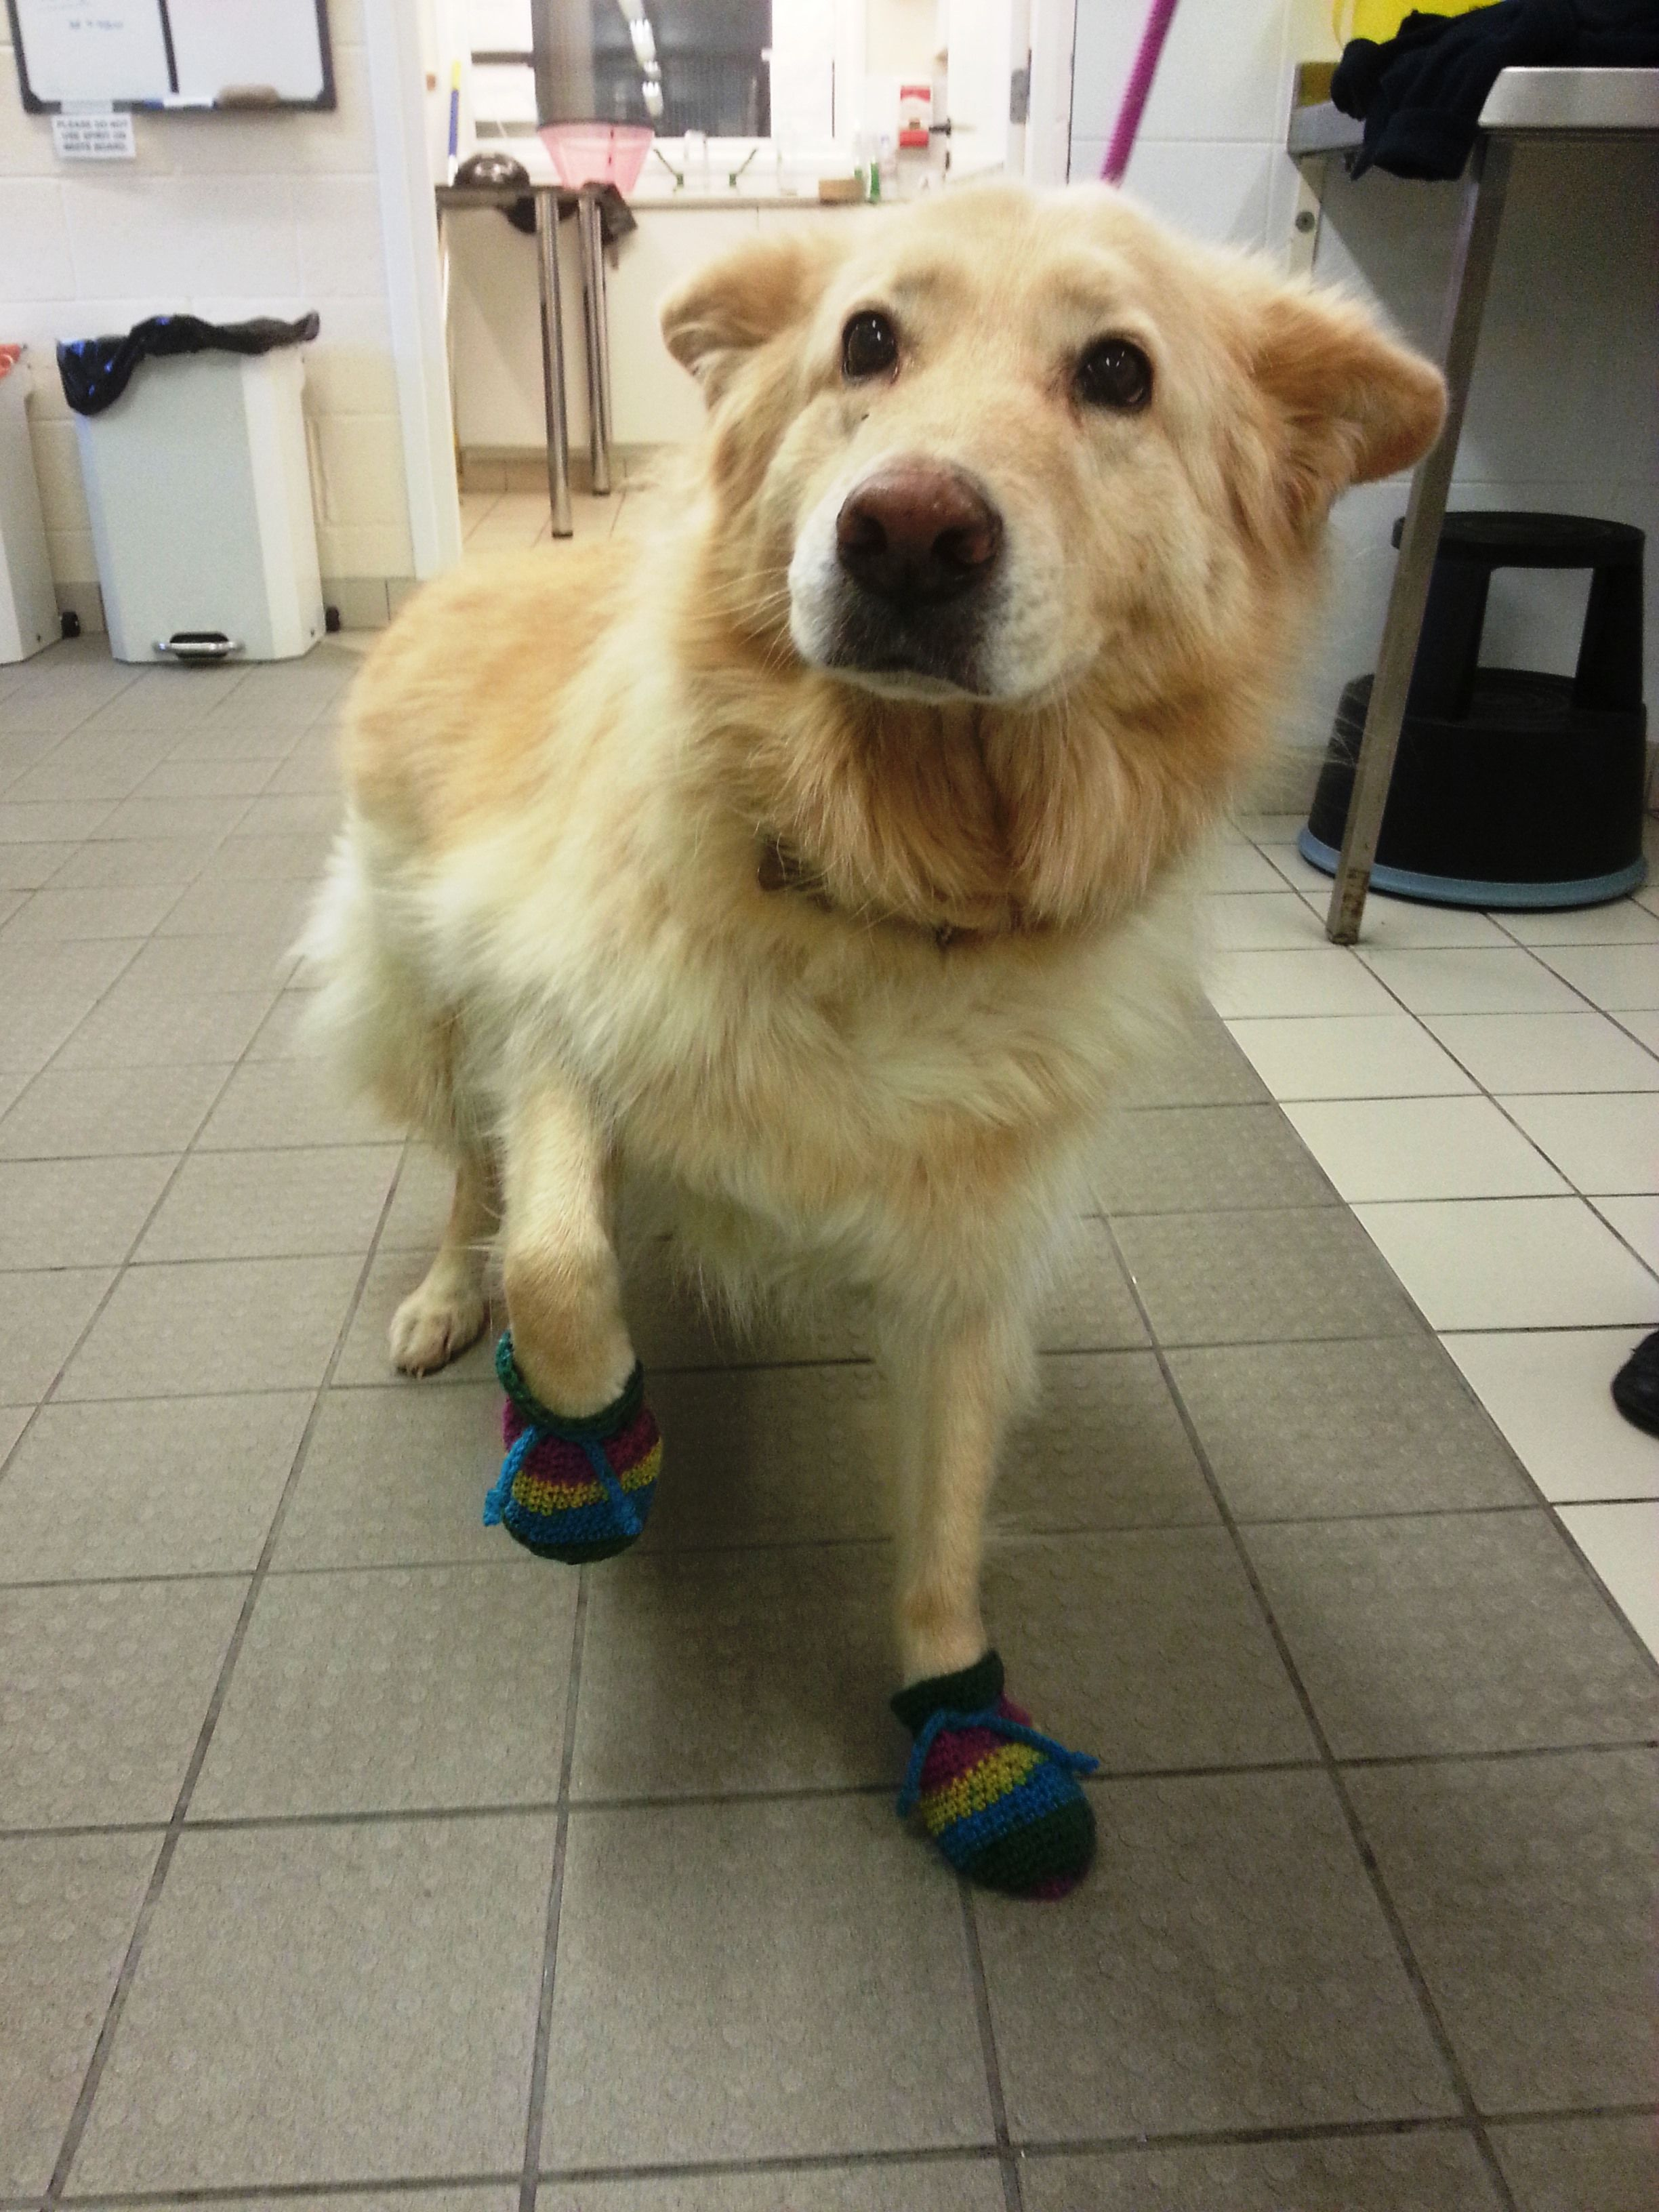 One happy dog proudly showing off his socks!